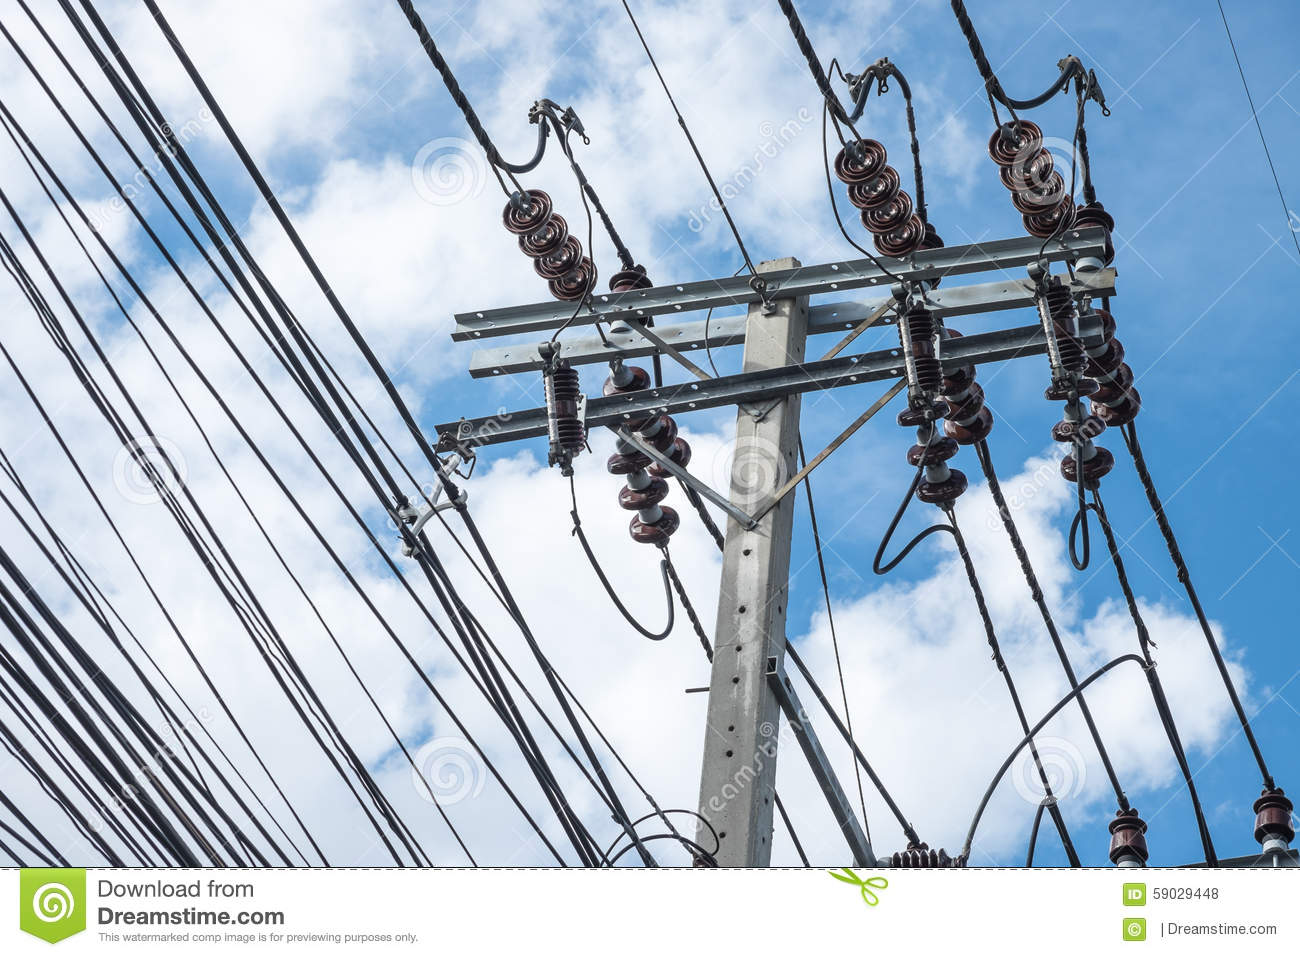 Power Pole With Cables Or Wire On Street Stock Photo - Image of ...